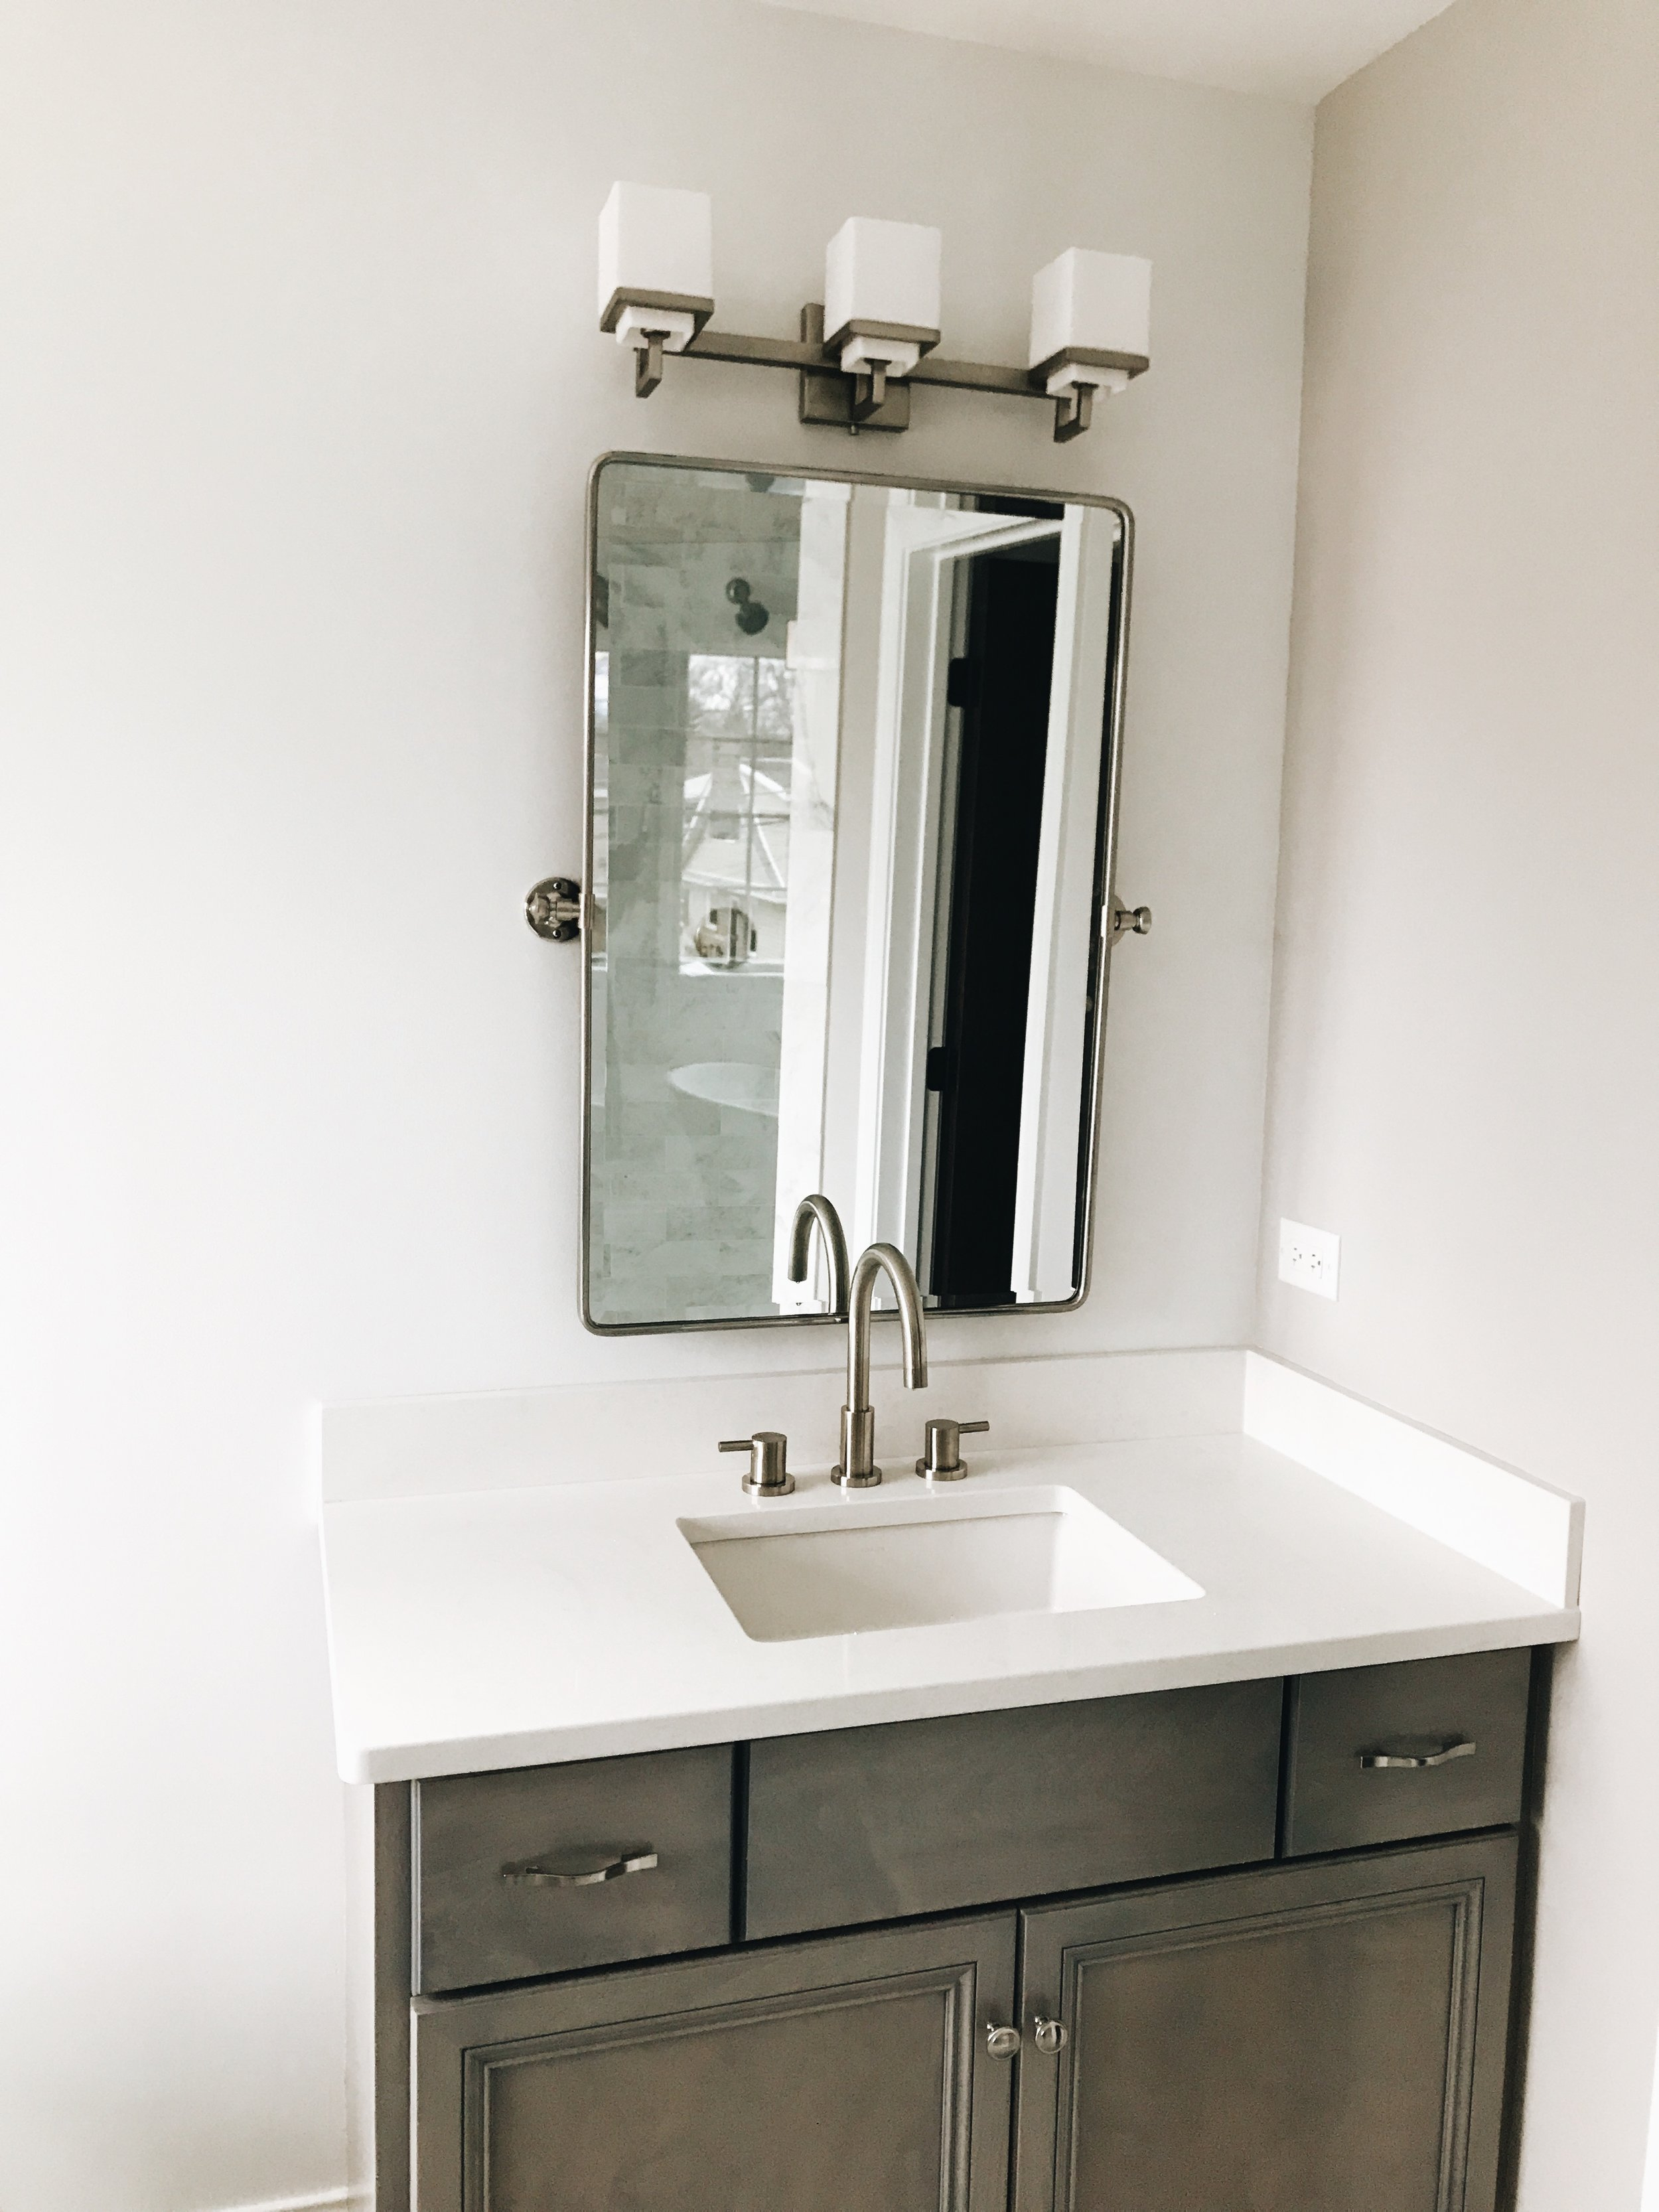 Bathroom With Mirrors Avoid These Two Major Mistakes When Buying Bathroom Vanity Mirrors